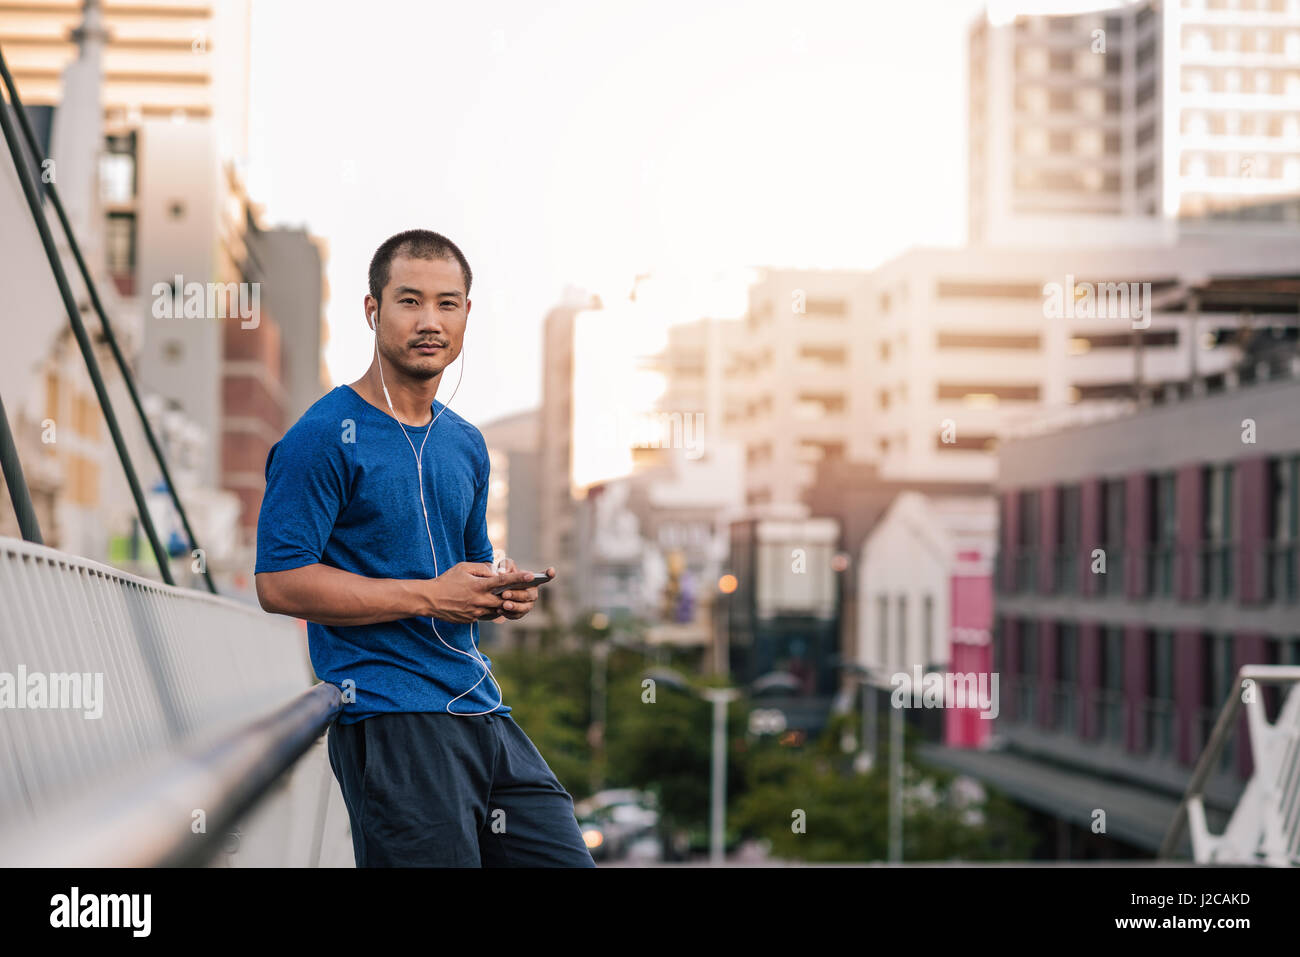 Young Asian man listening to music before a city run - Stock Image